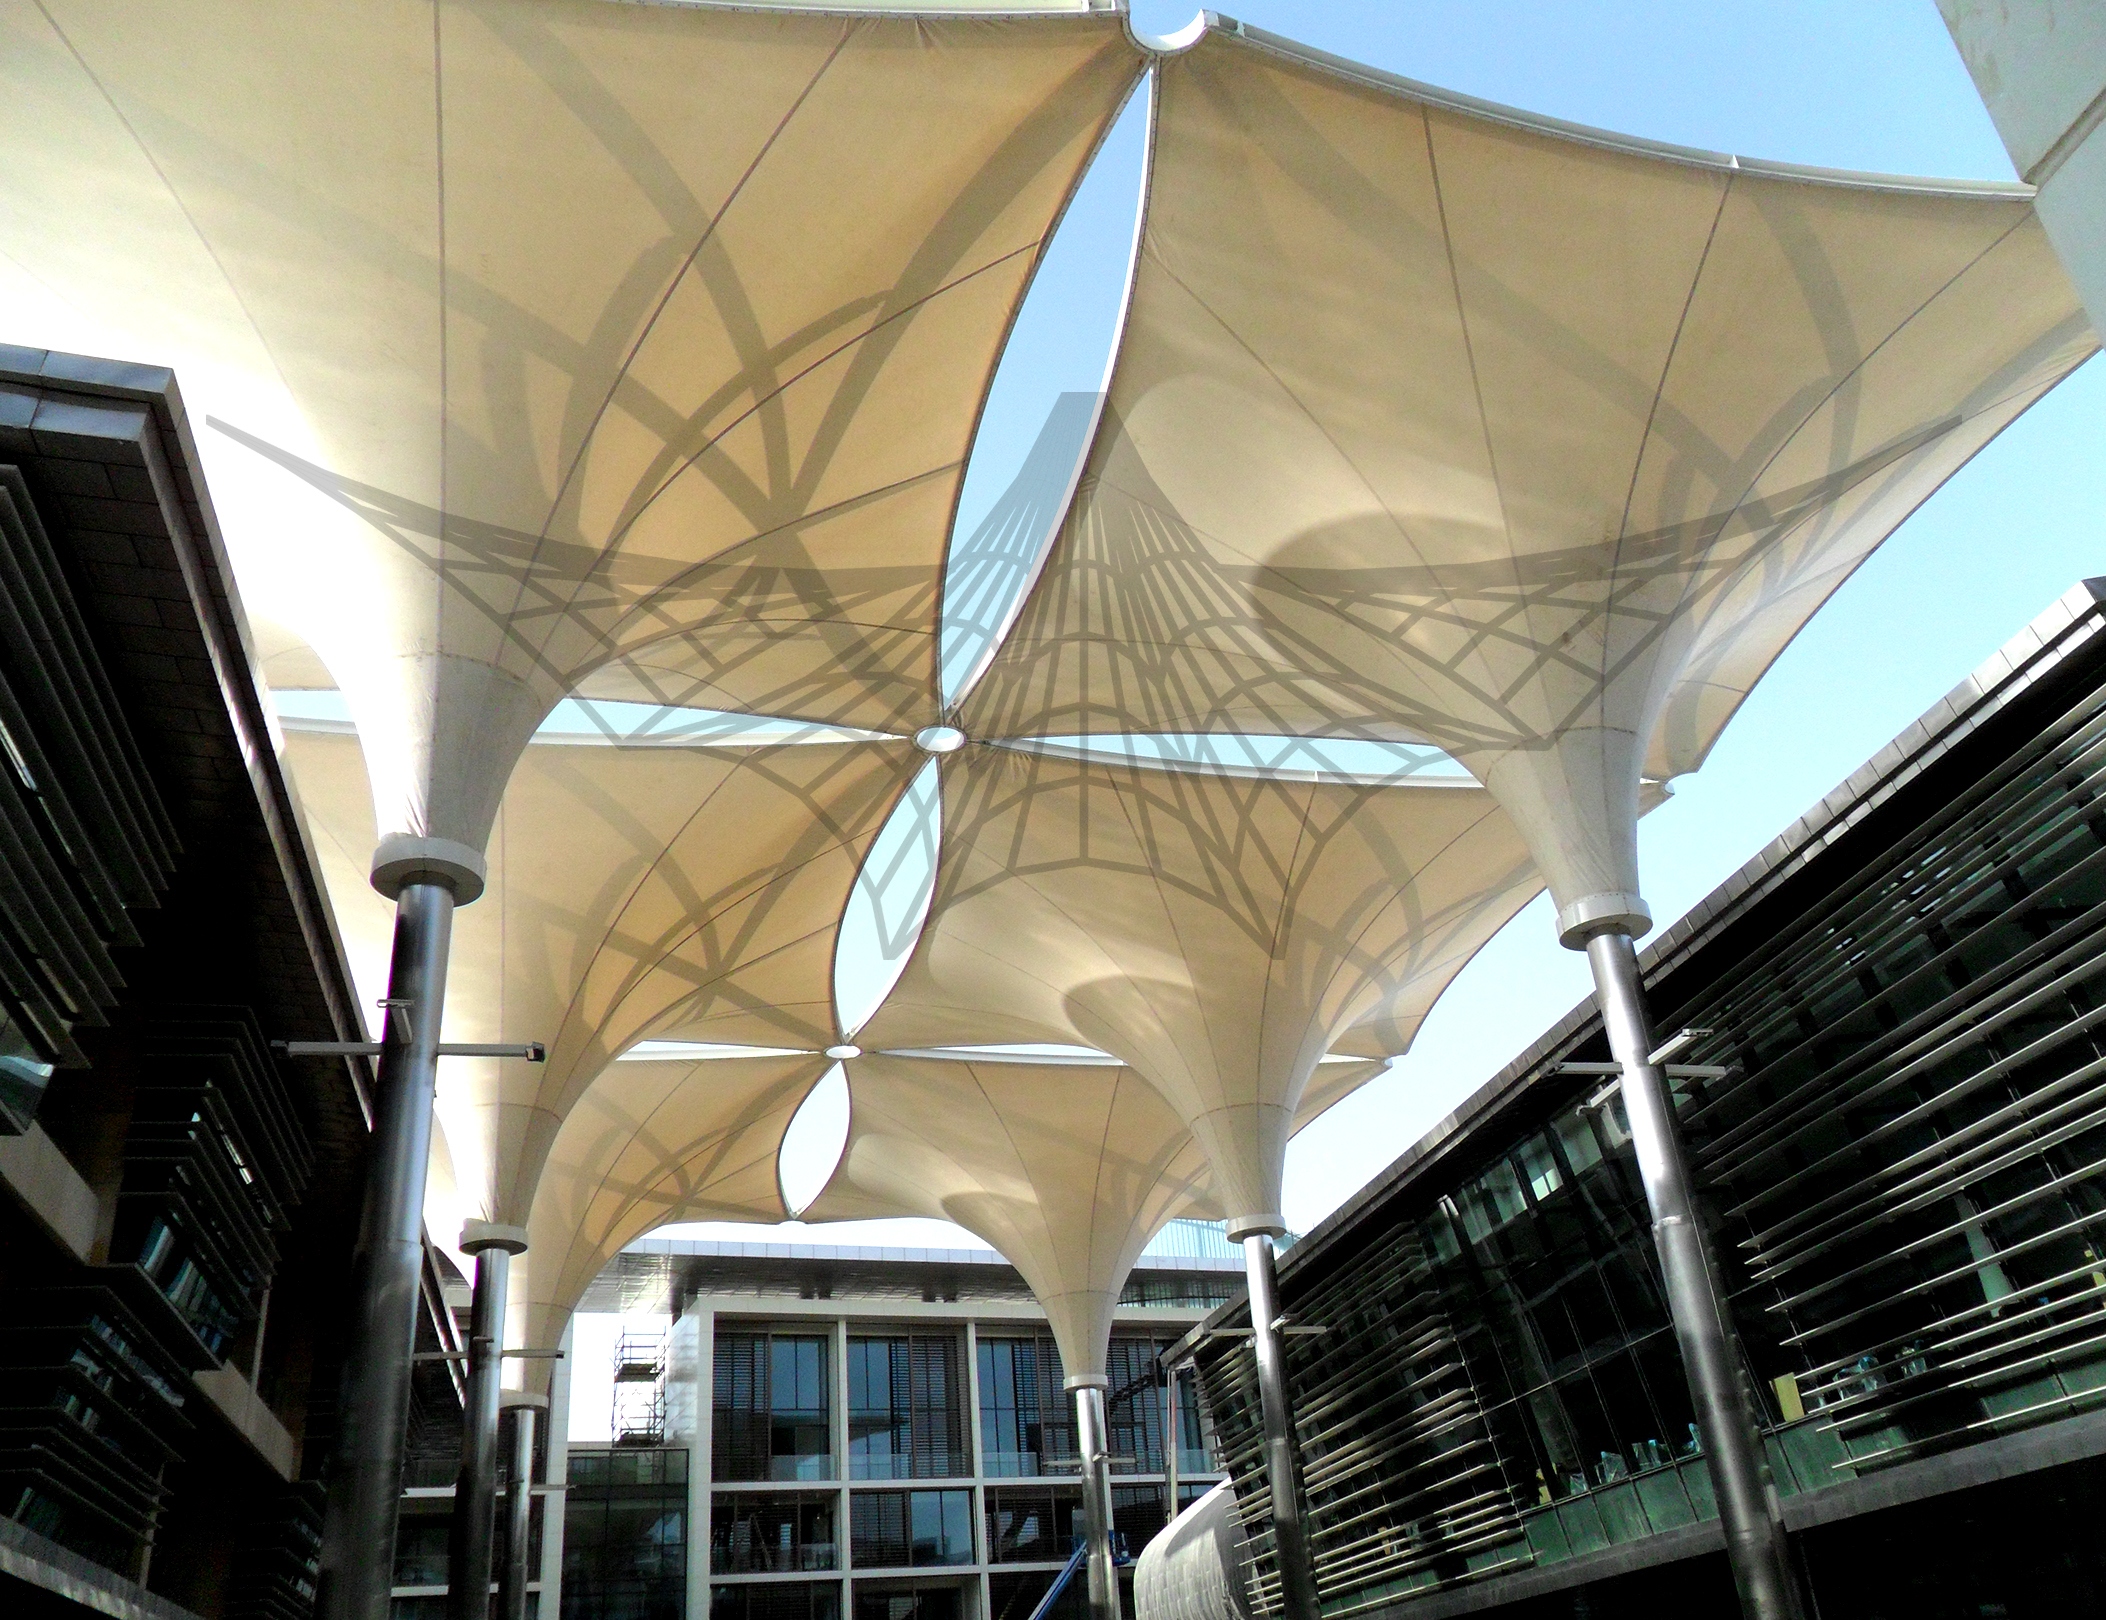 An example of the tensile installation you could have as your temporary exhibition structures